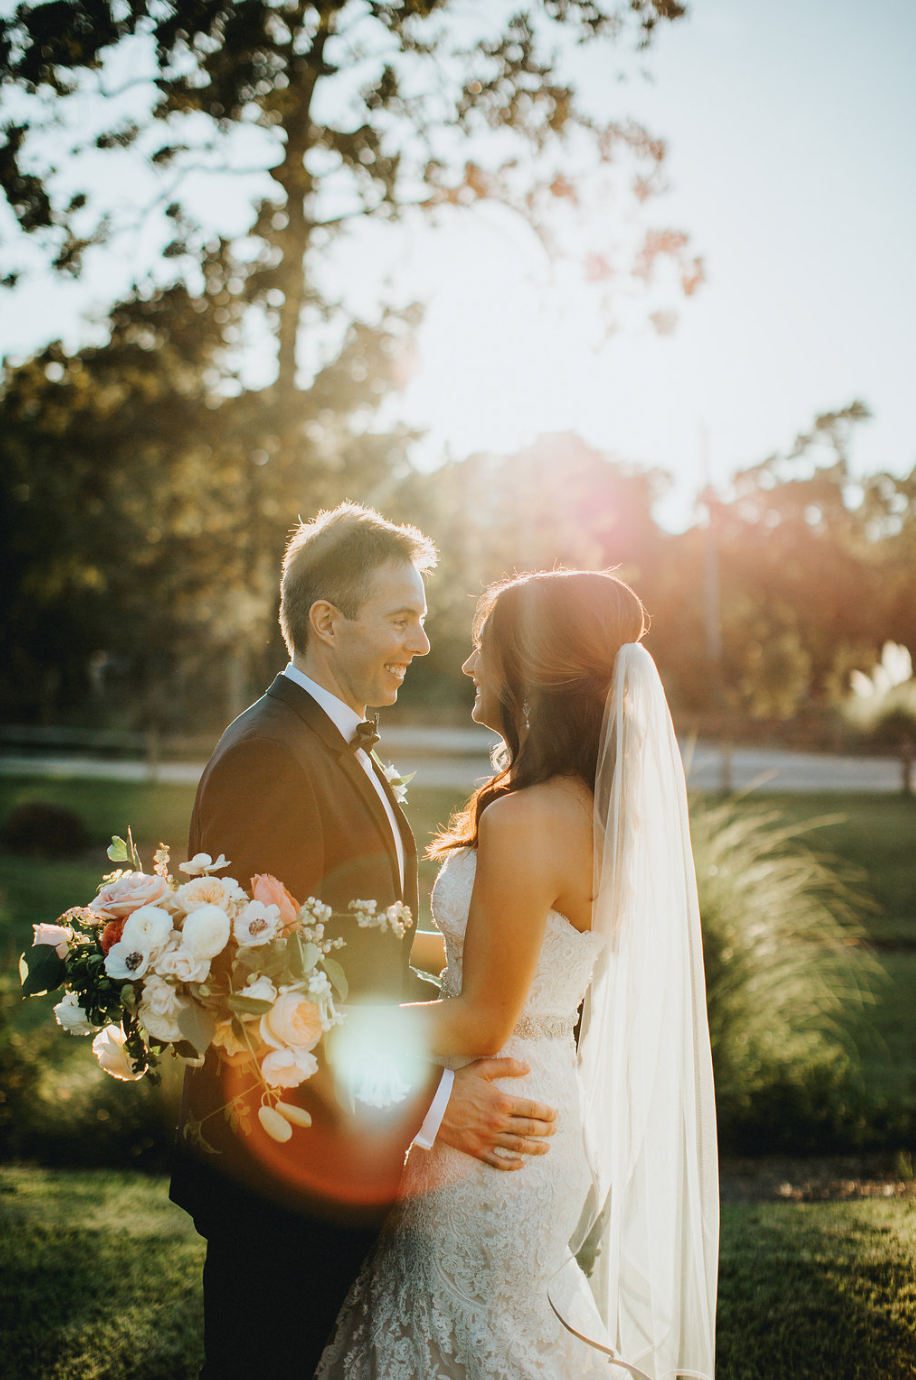 The perfect lighting shining on the newlyweds. Bridal Bouquet by Maxit Flower Design in Houston, TX.